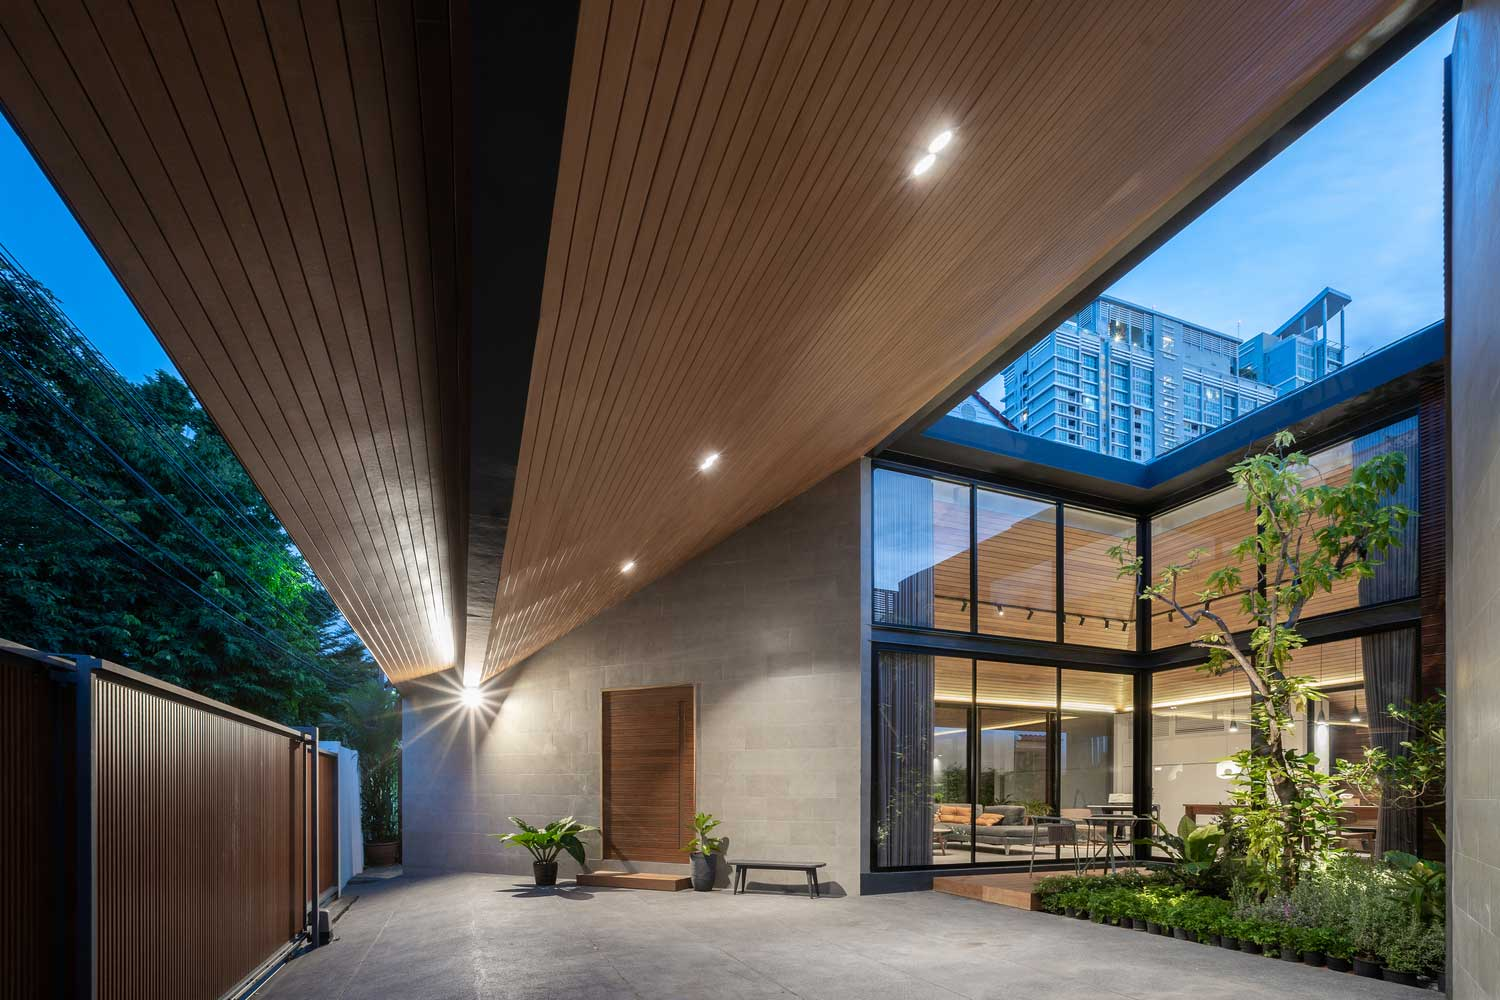 House Roof Design as the Main Architectural Element that gives charm to the whole Building